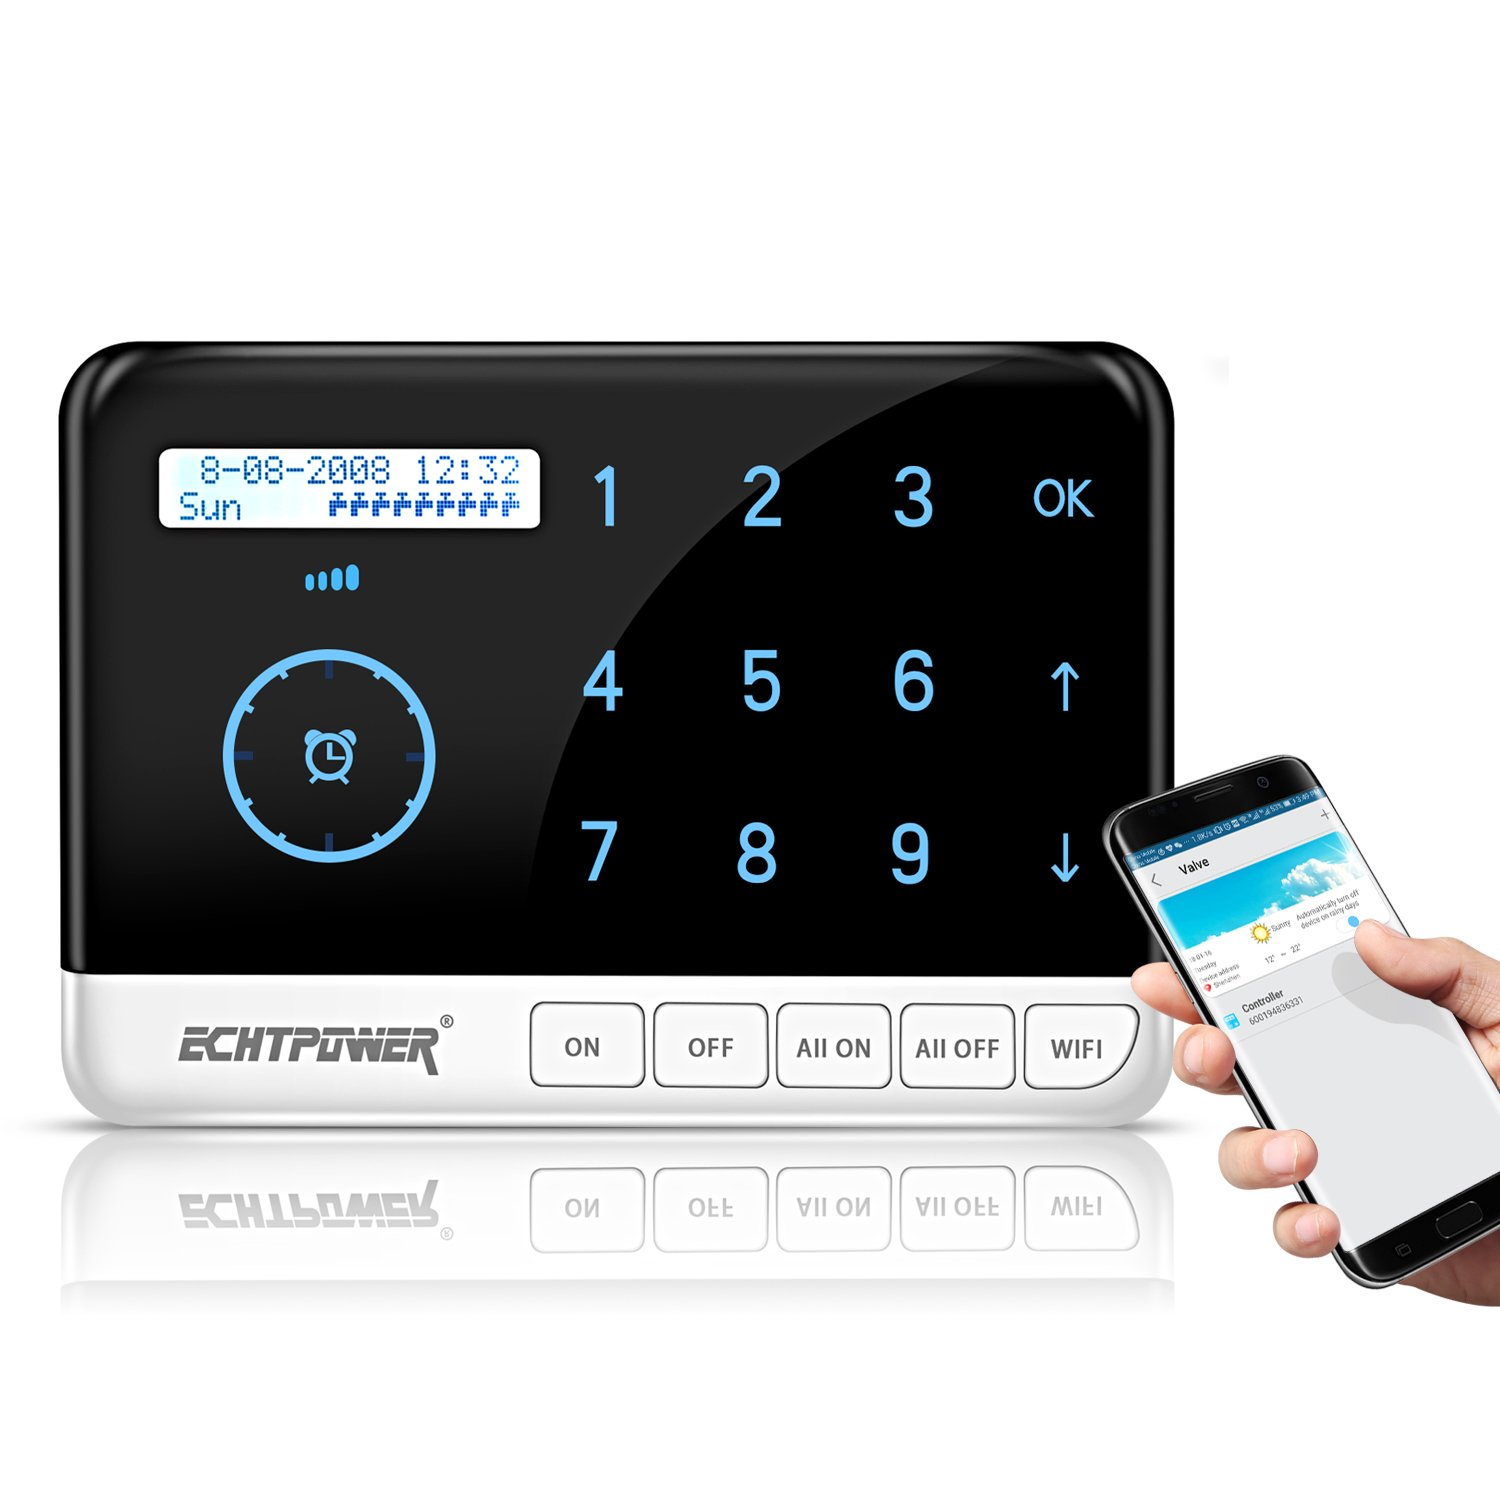 ECHTPower 9 Zone Smart Sprinkler Controller, Designed with WiFi Irrigation Timer, Compatible with Alexa and Google home